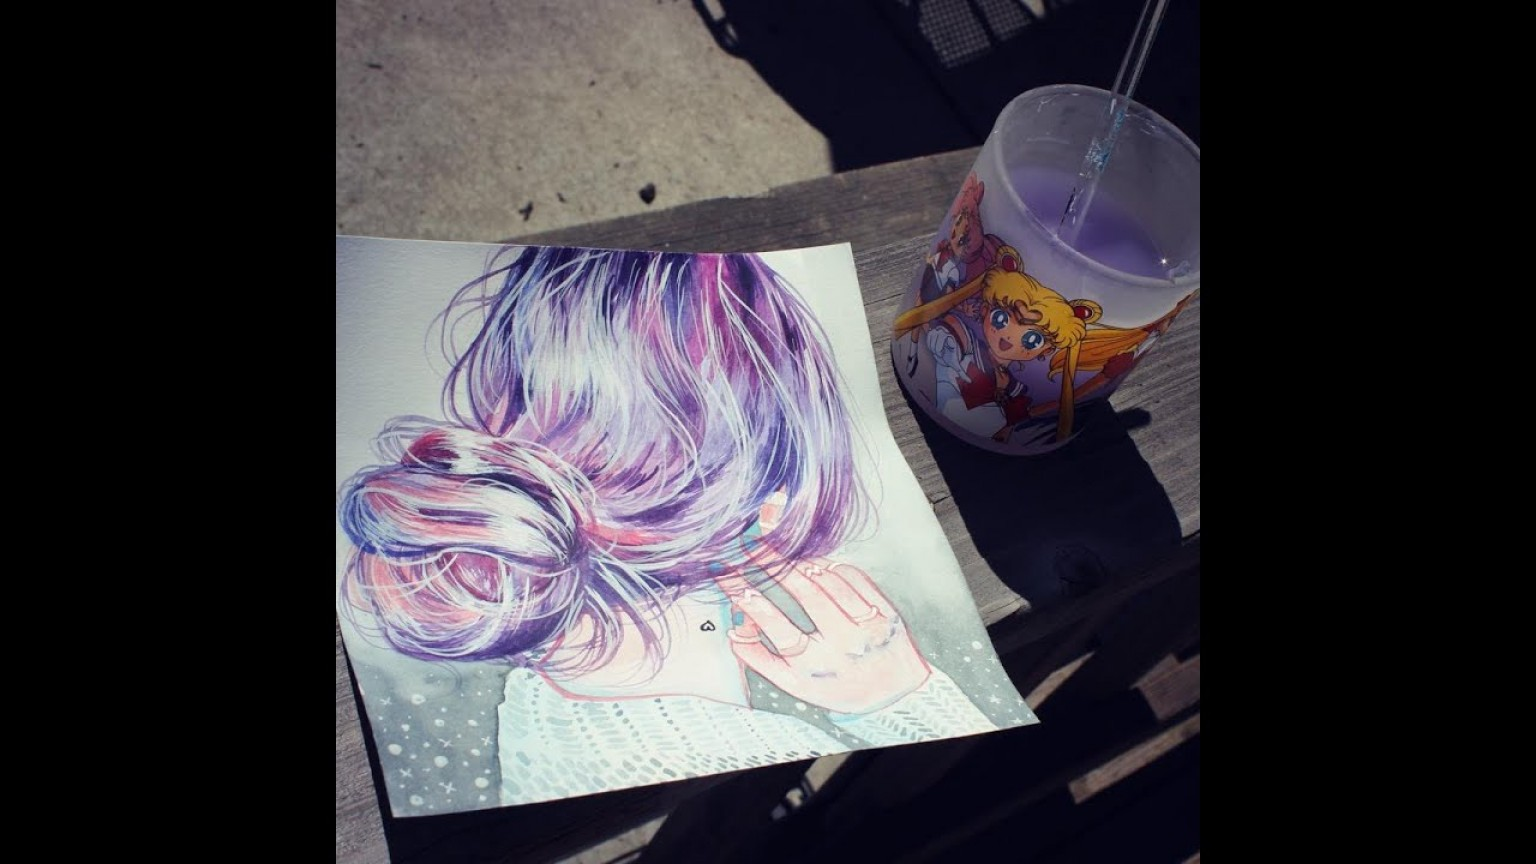 Hello Kitty Grayscale Vector-Based: How To Paint Hair With Watercolor Tutorial And Tips